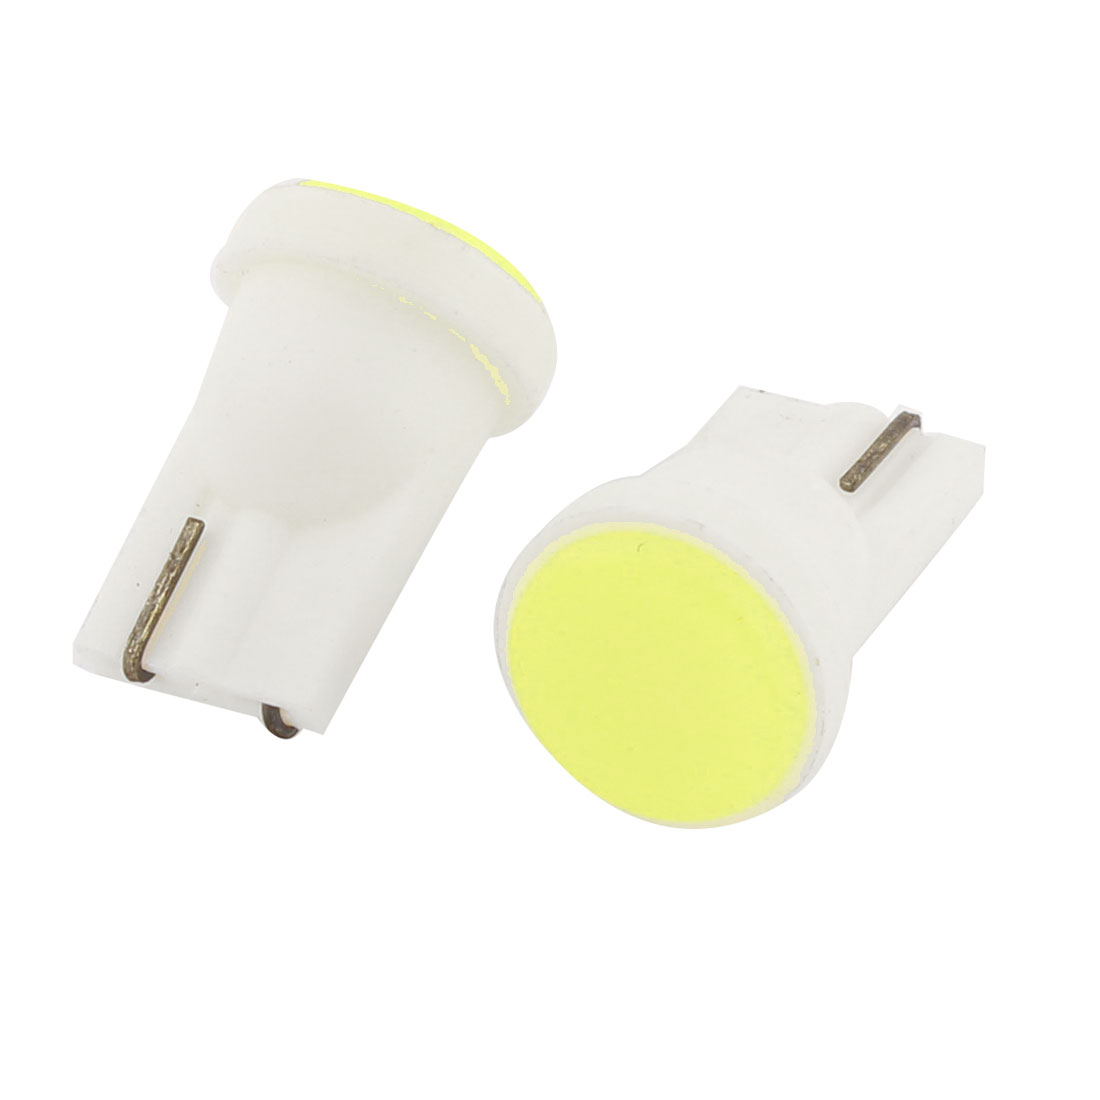 2 Pcs T10 W5W White COB Car Side Wedge Signal Light Lamp Bulb DC 12V Interior